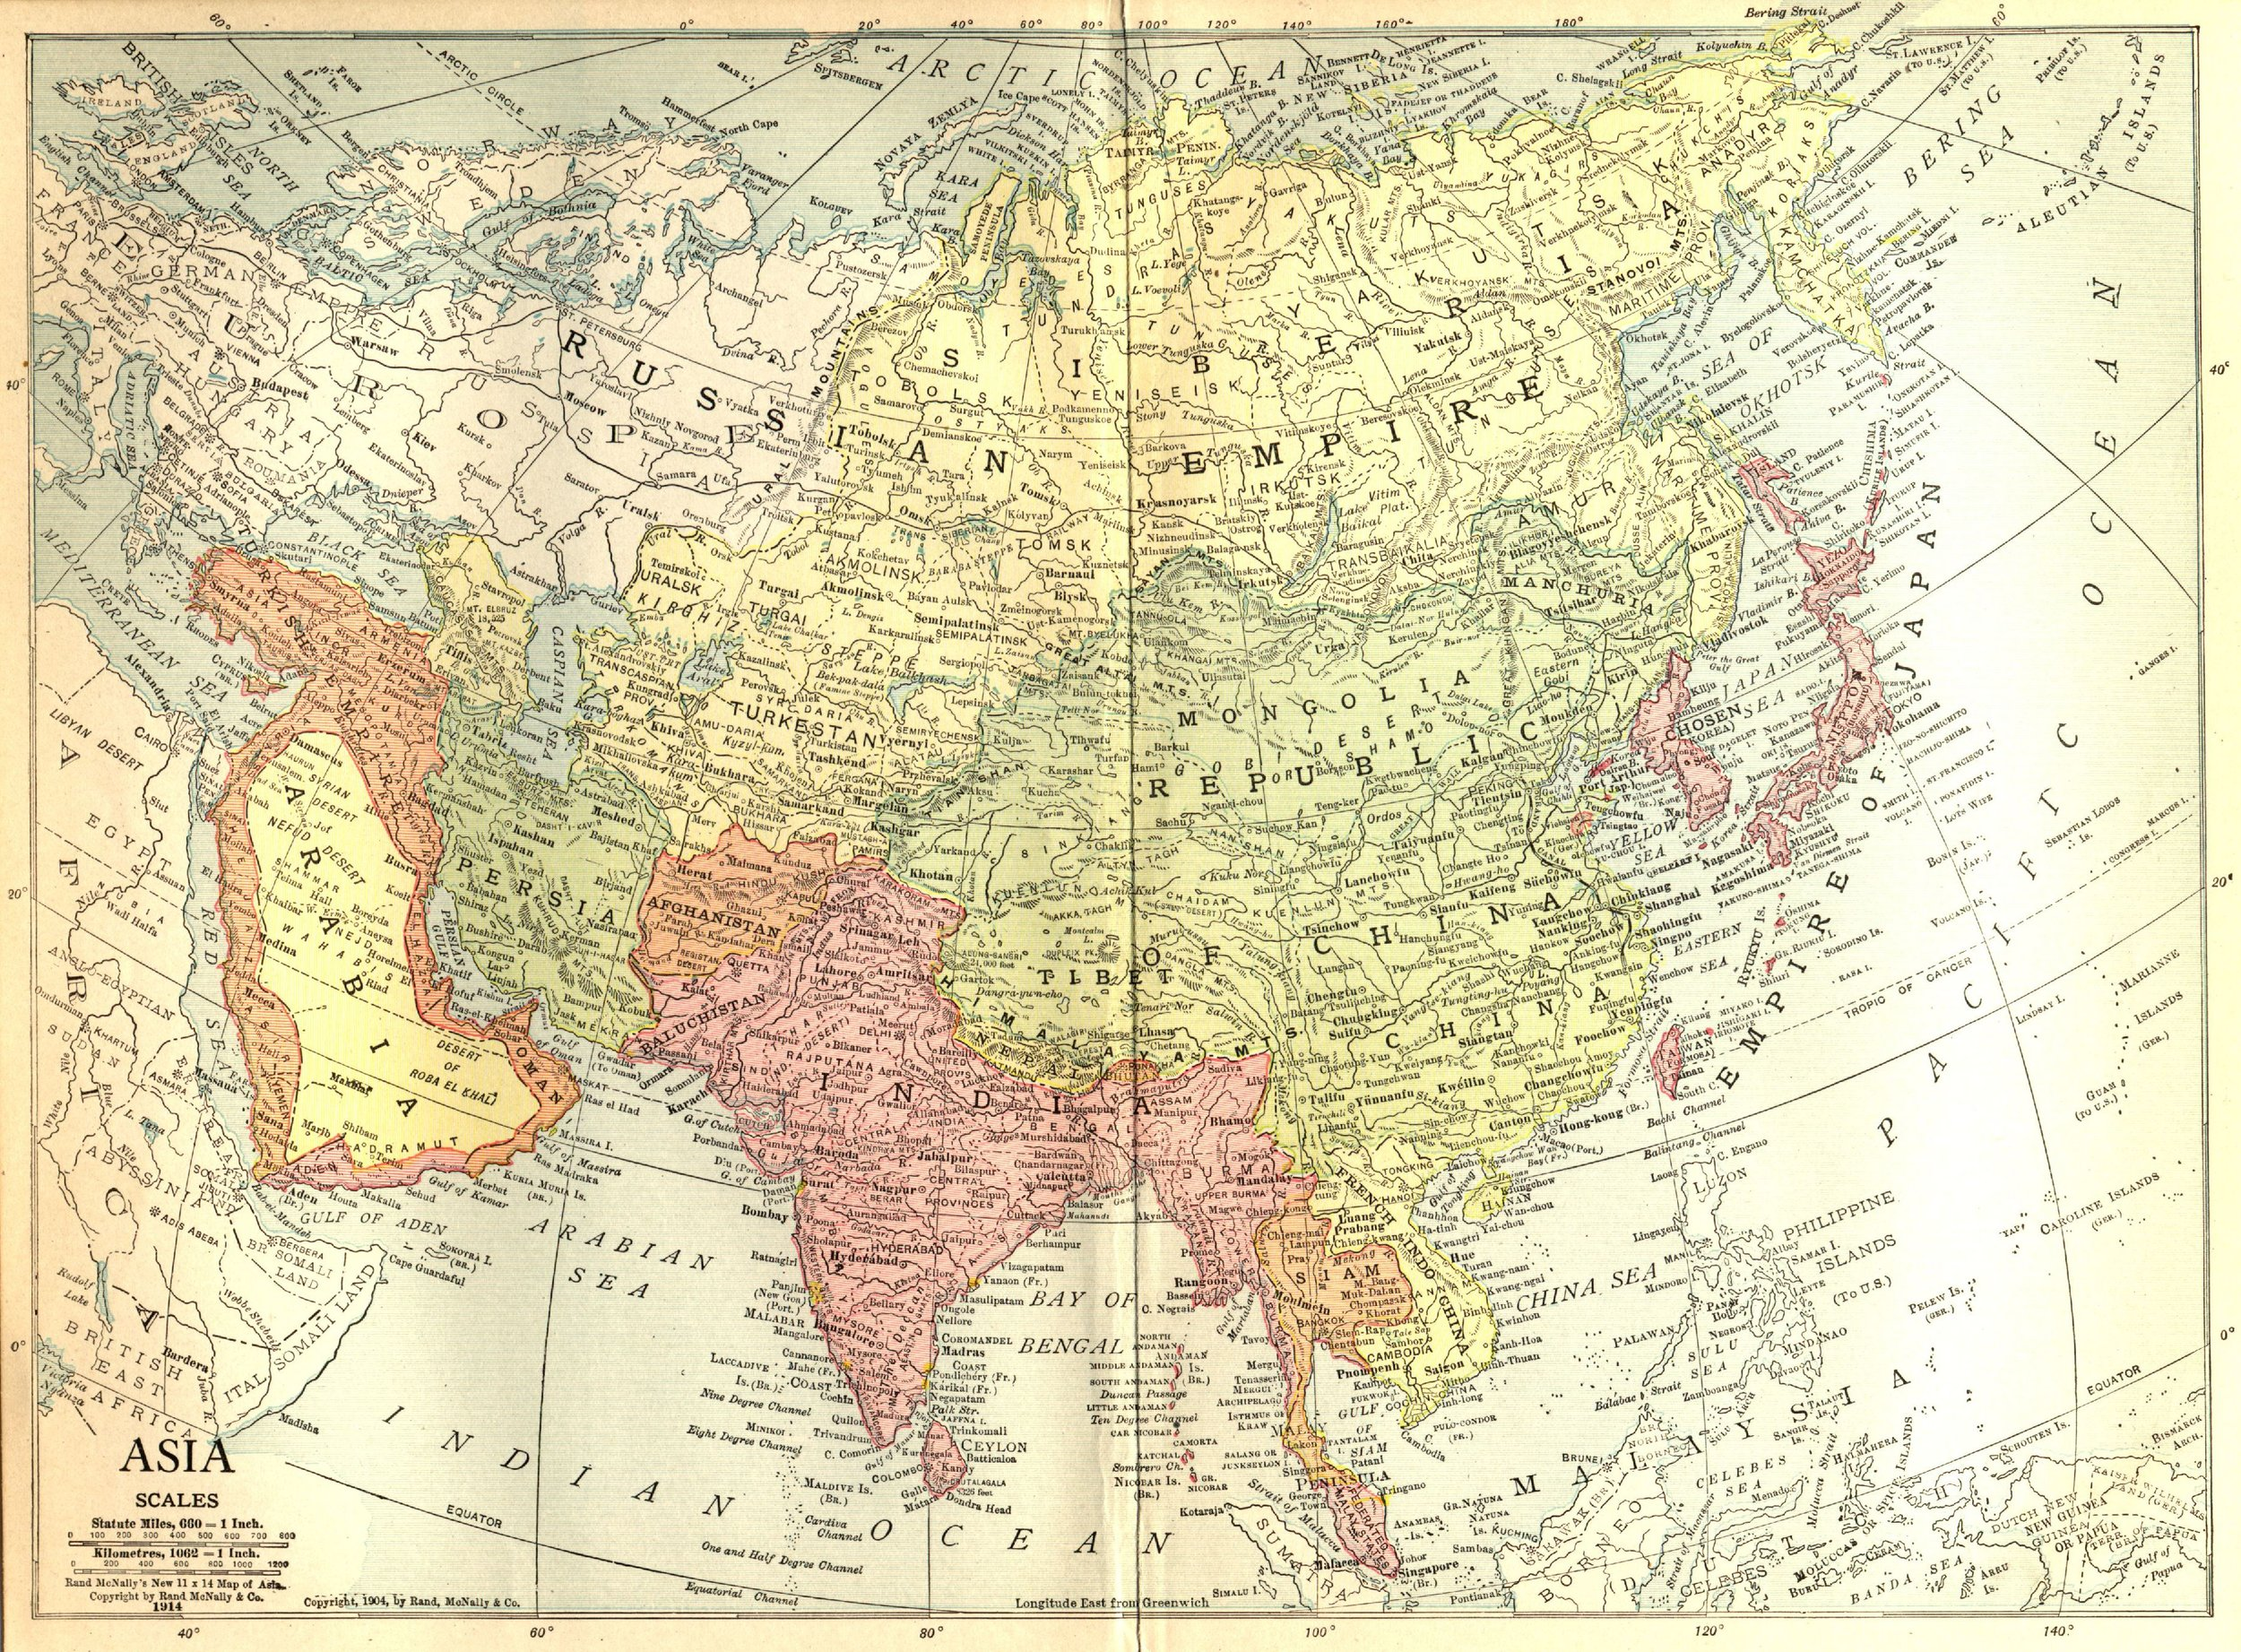 1914_map_of_Asia.jpg